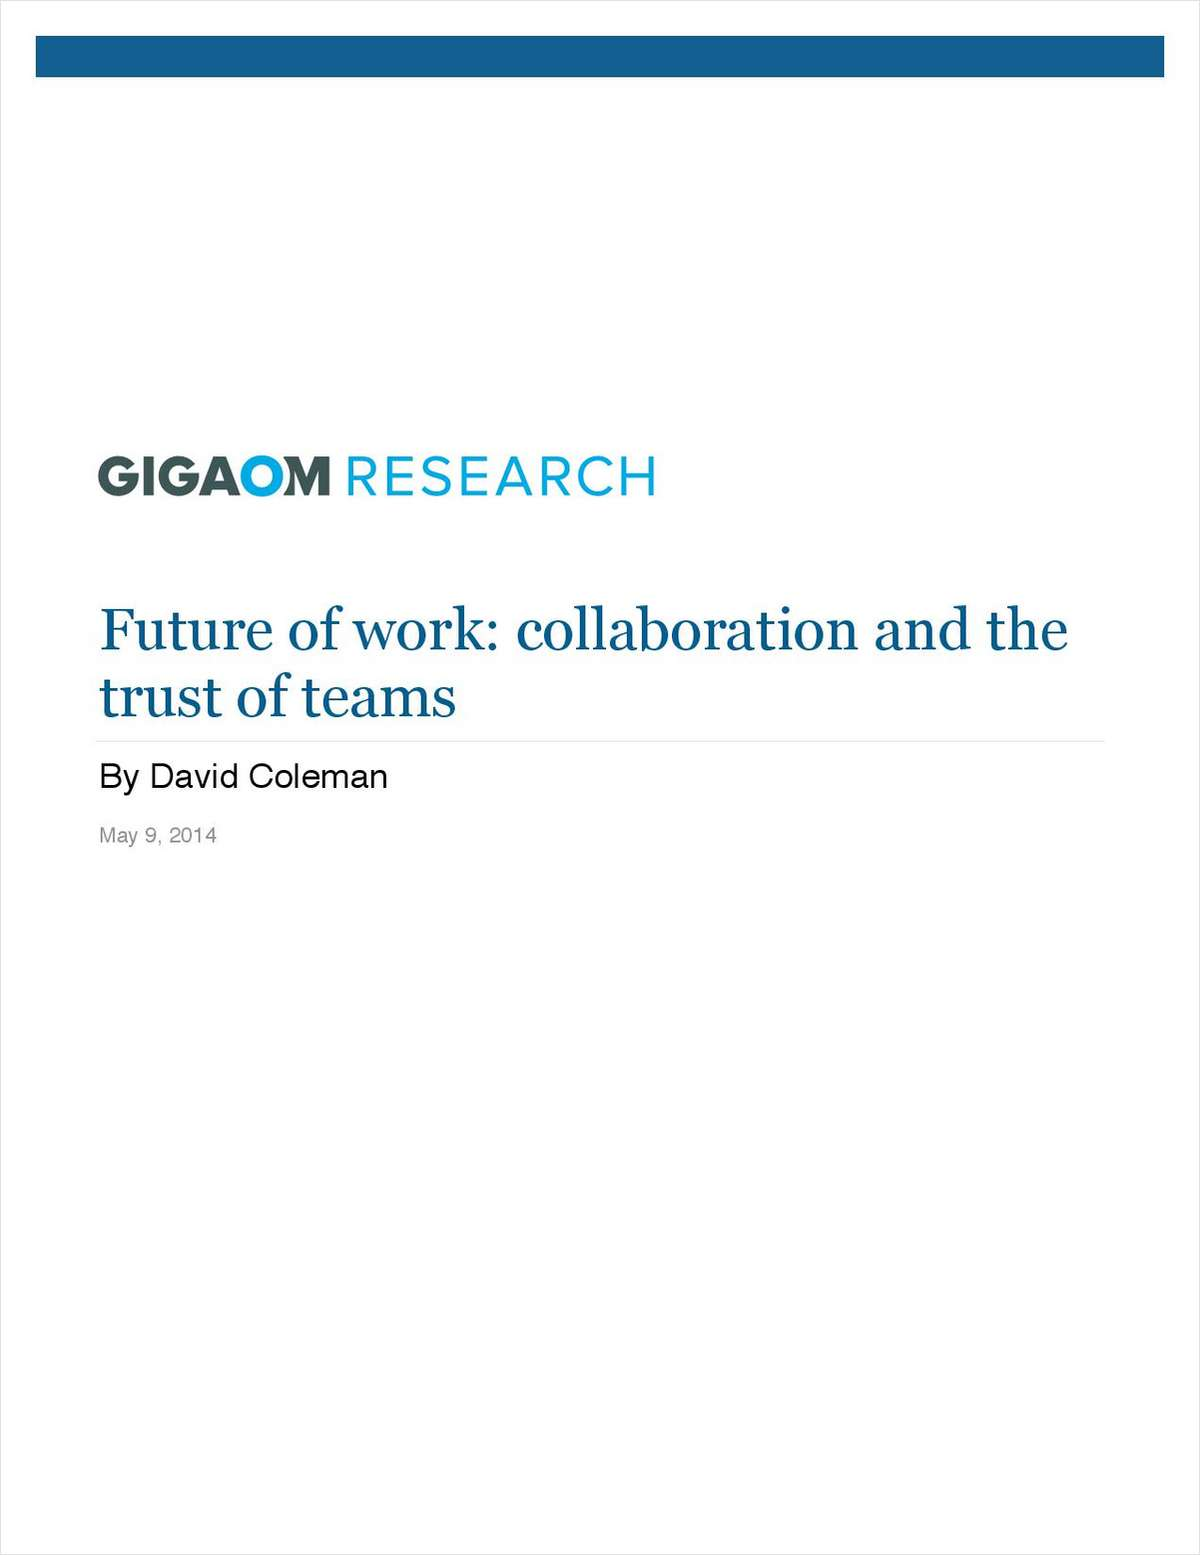 The Future of Work: Collaboration and the Trust of Teams